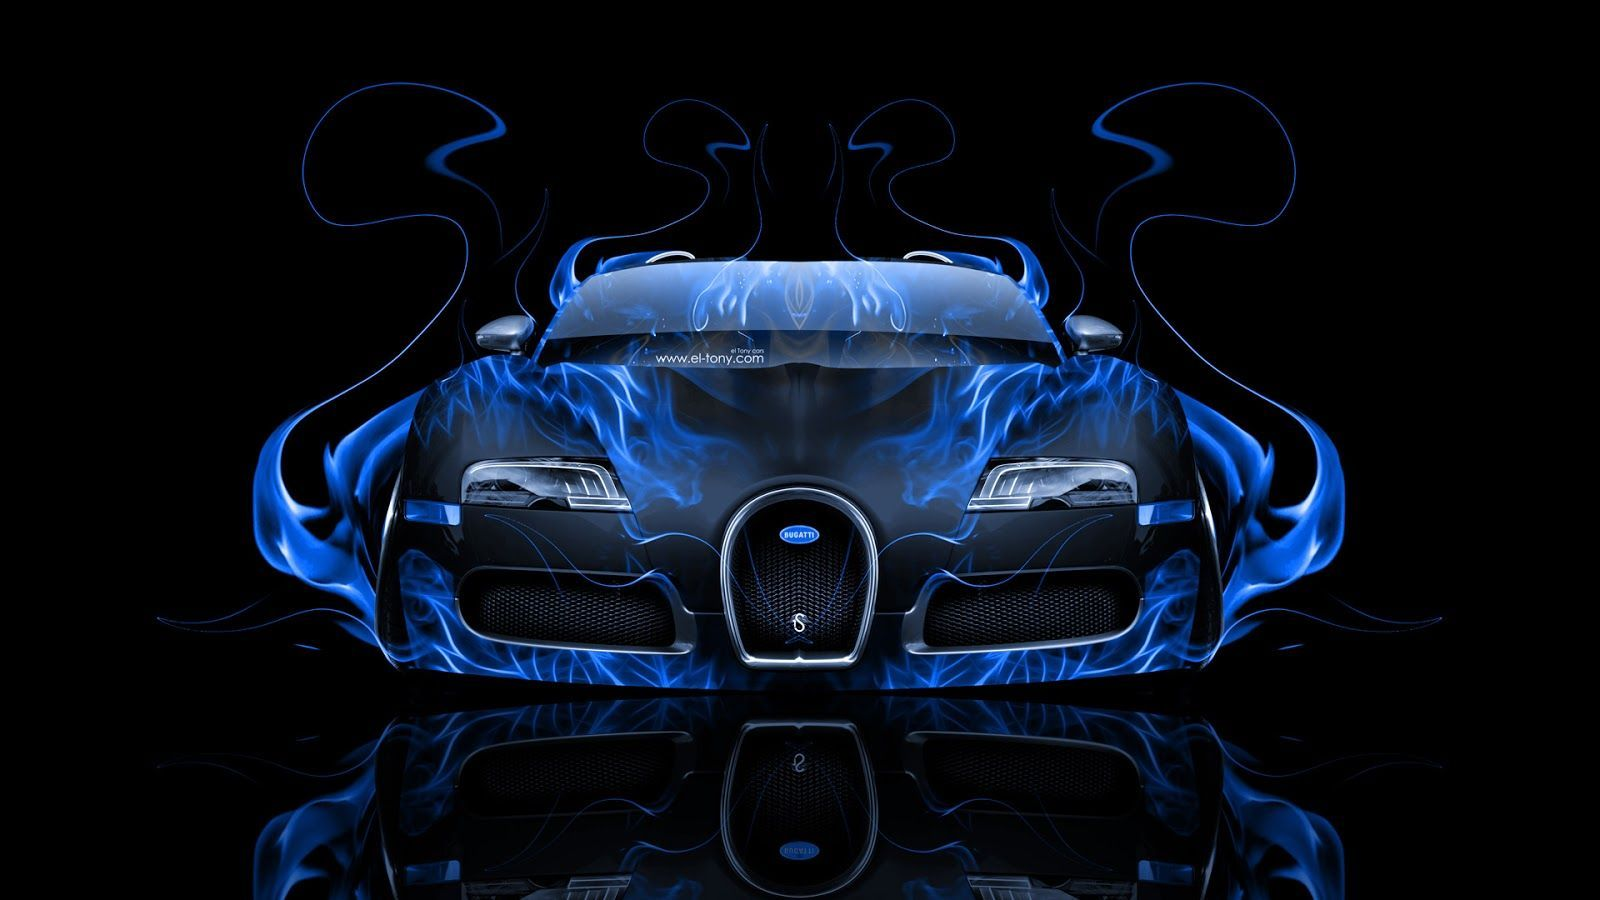 Cool Bugatti Wallpapers Top Free Cool Bugatti Backgrounds Wallpaperaccess